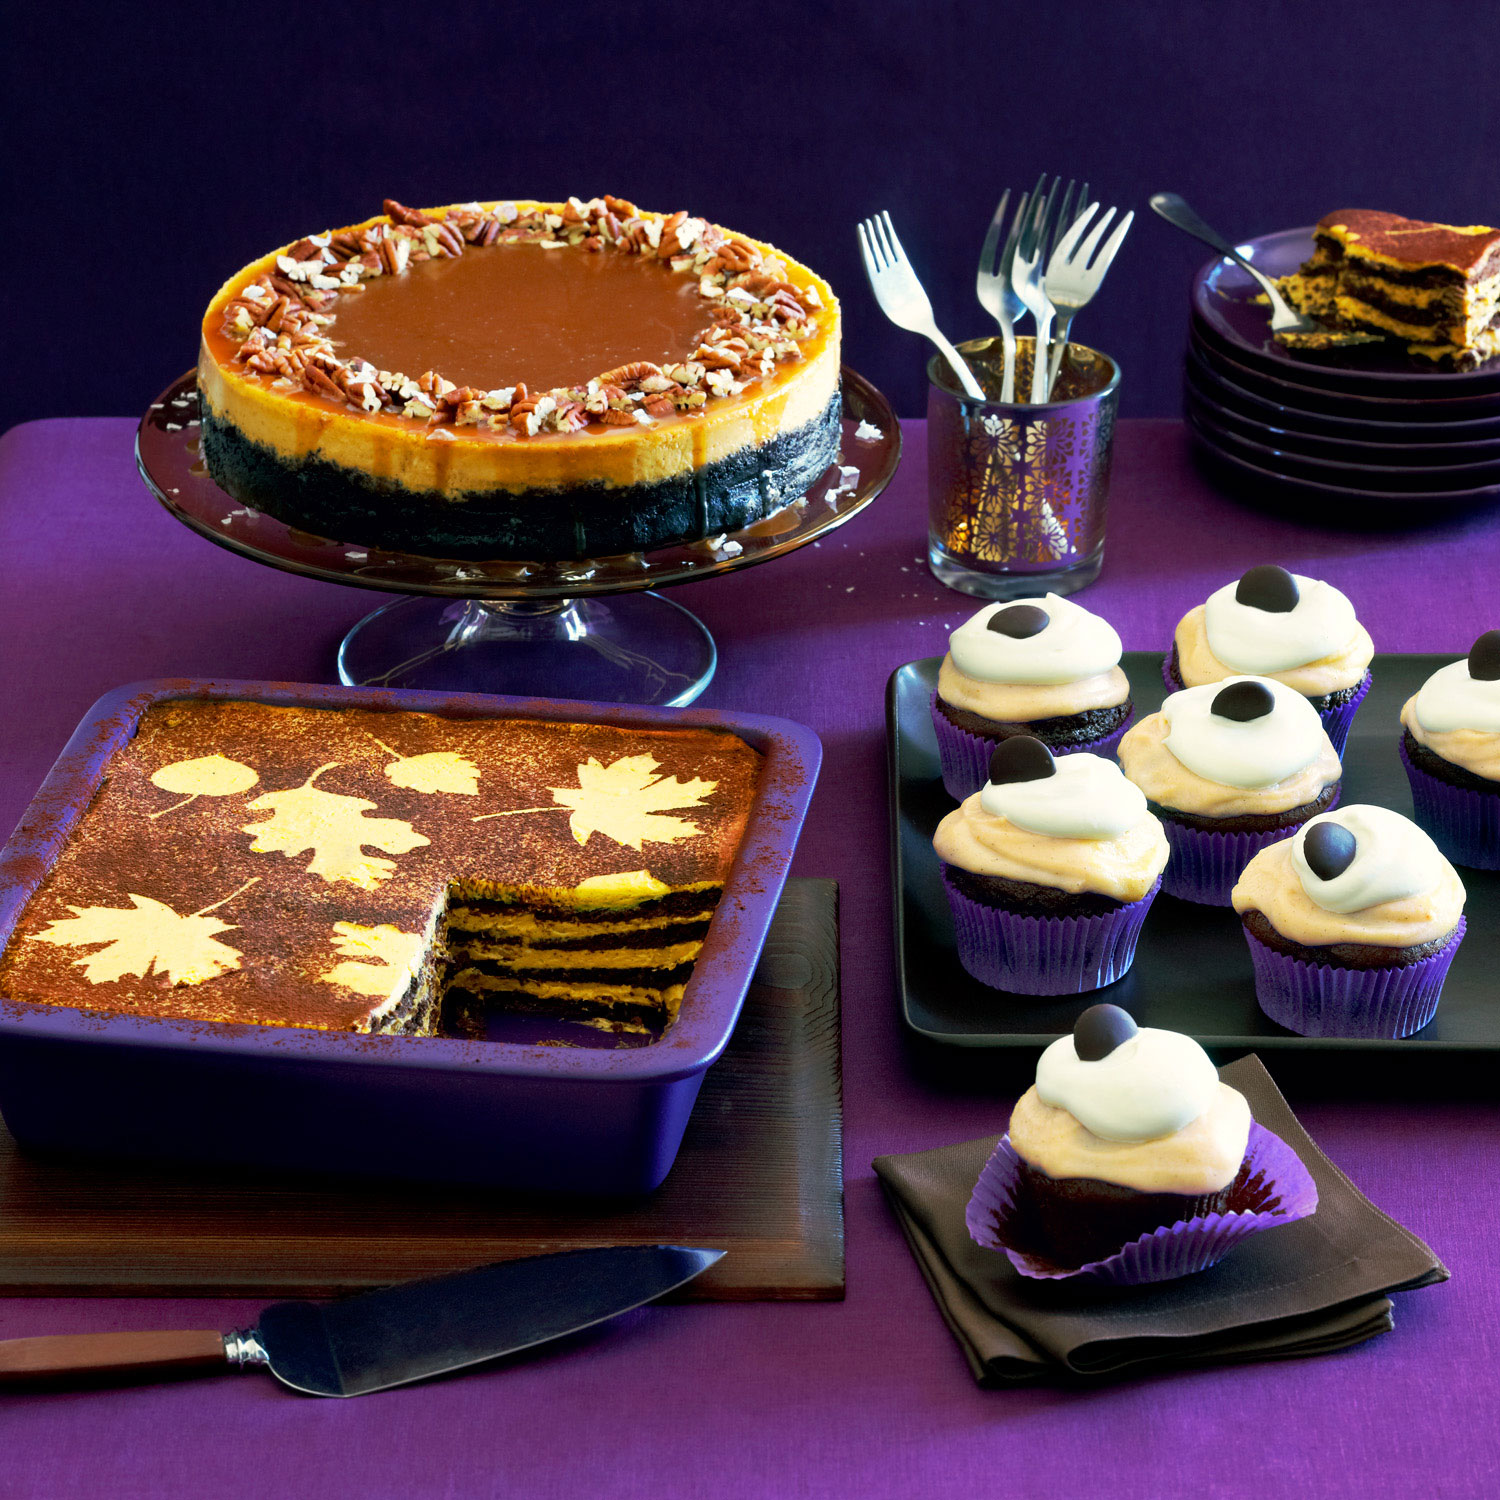 3 Mind-Blowing Pumpkin-Chocolate Desserts